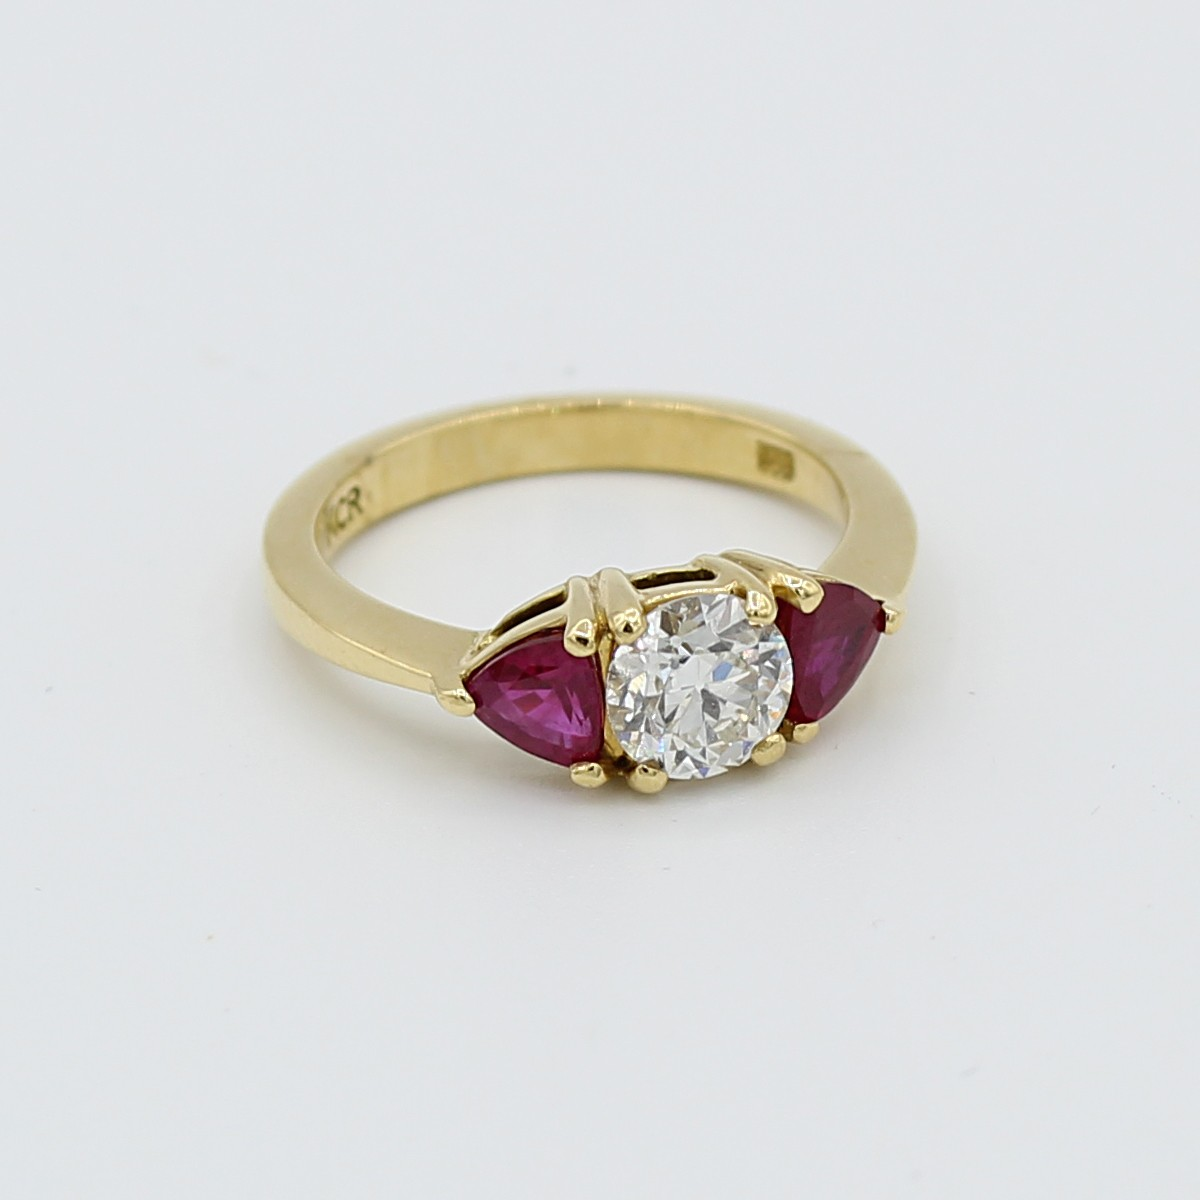 Vintage 18k yellow gold 3 stone diamond and ruby ring.